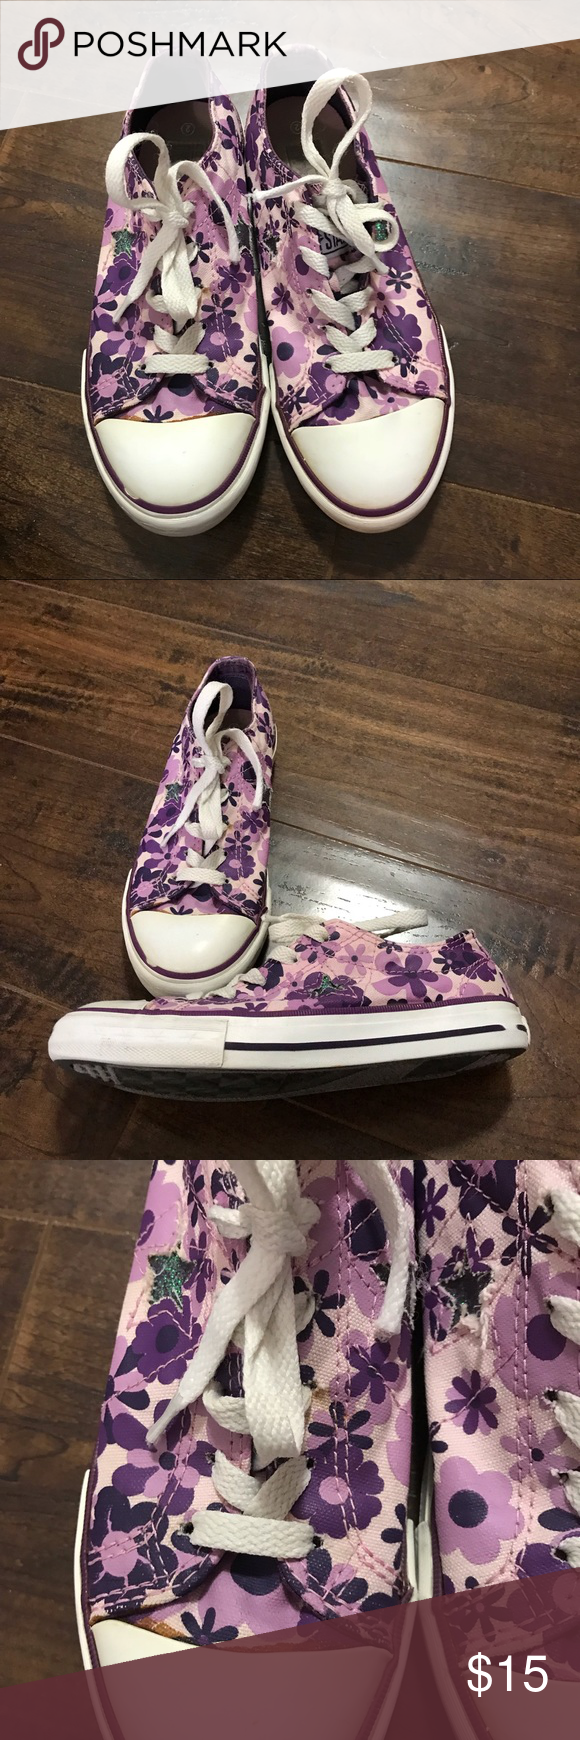 aa26fea54aaa Girls size 2 Converse One Stars Girls size 2 Converse One Stars. Cute purple  flower print. Signs of wear as shown in pics.